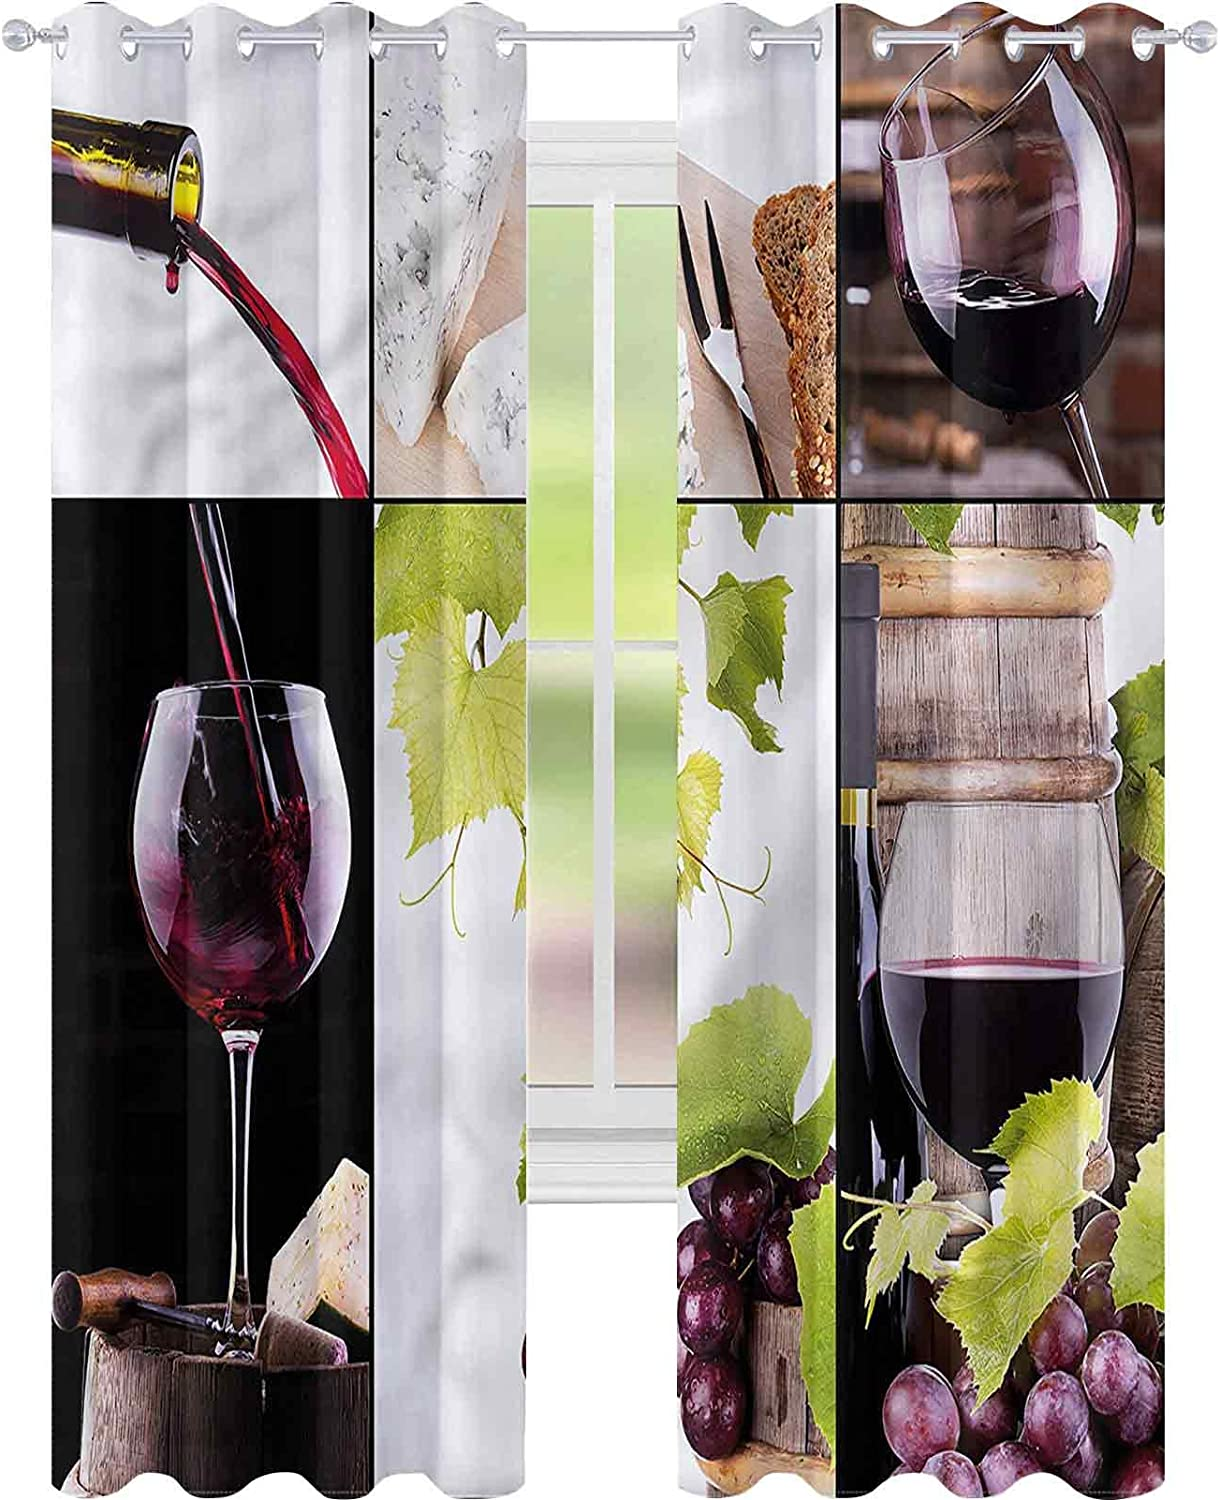 Window Curtain Drape Wine Barrel Bottle W52 Room Attention brand Inventory cleanup selling sale x Wineglass L63